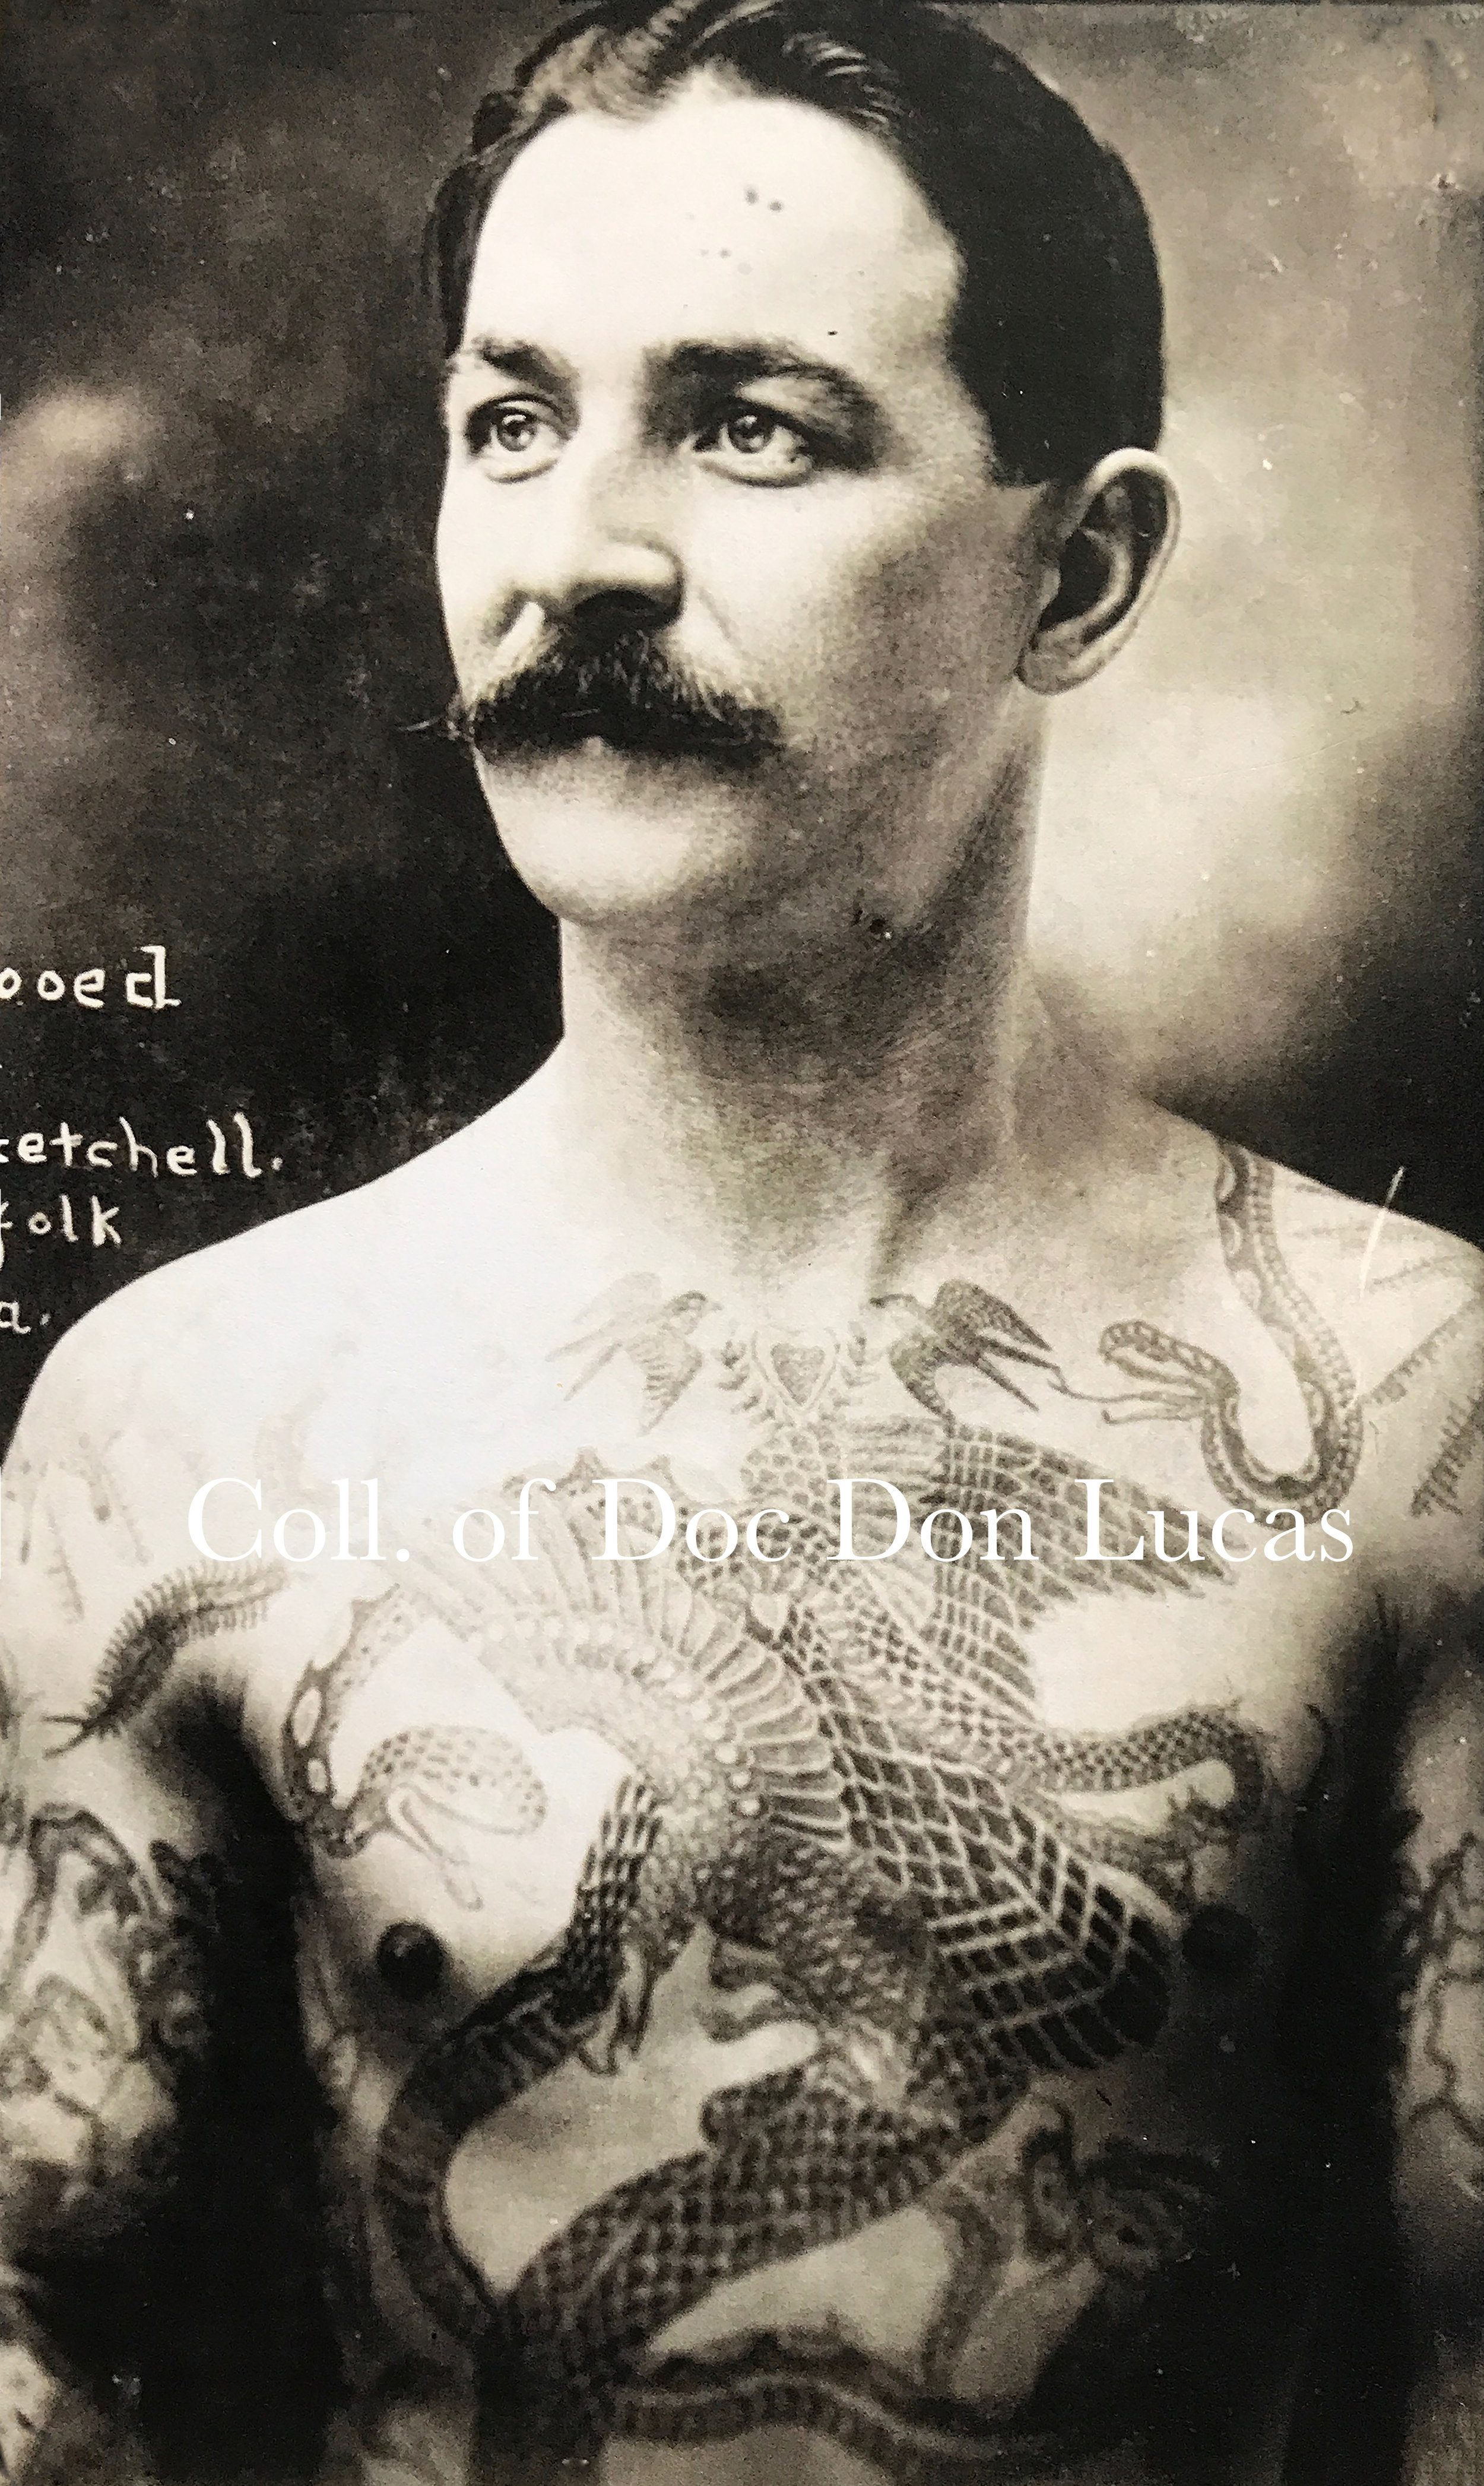 """Tattooed by Prof. Getchell, Norfolk, Va.,"" Photograph Duplicated from a Cabinet Card by William Ettlin, 17 Chatham Square, ca. 1904.  Courtesy of Doc Don Lucas"